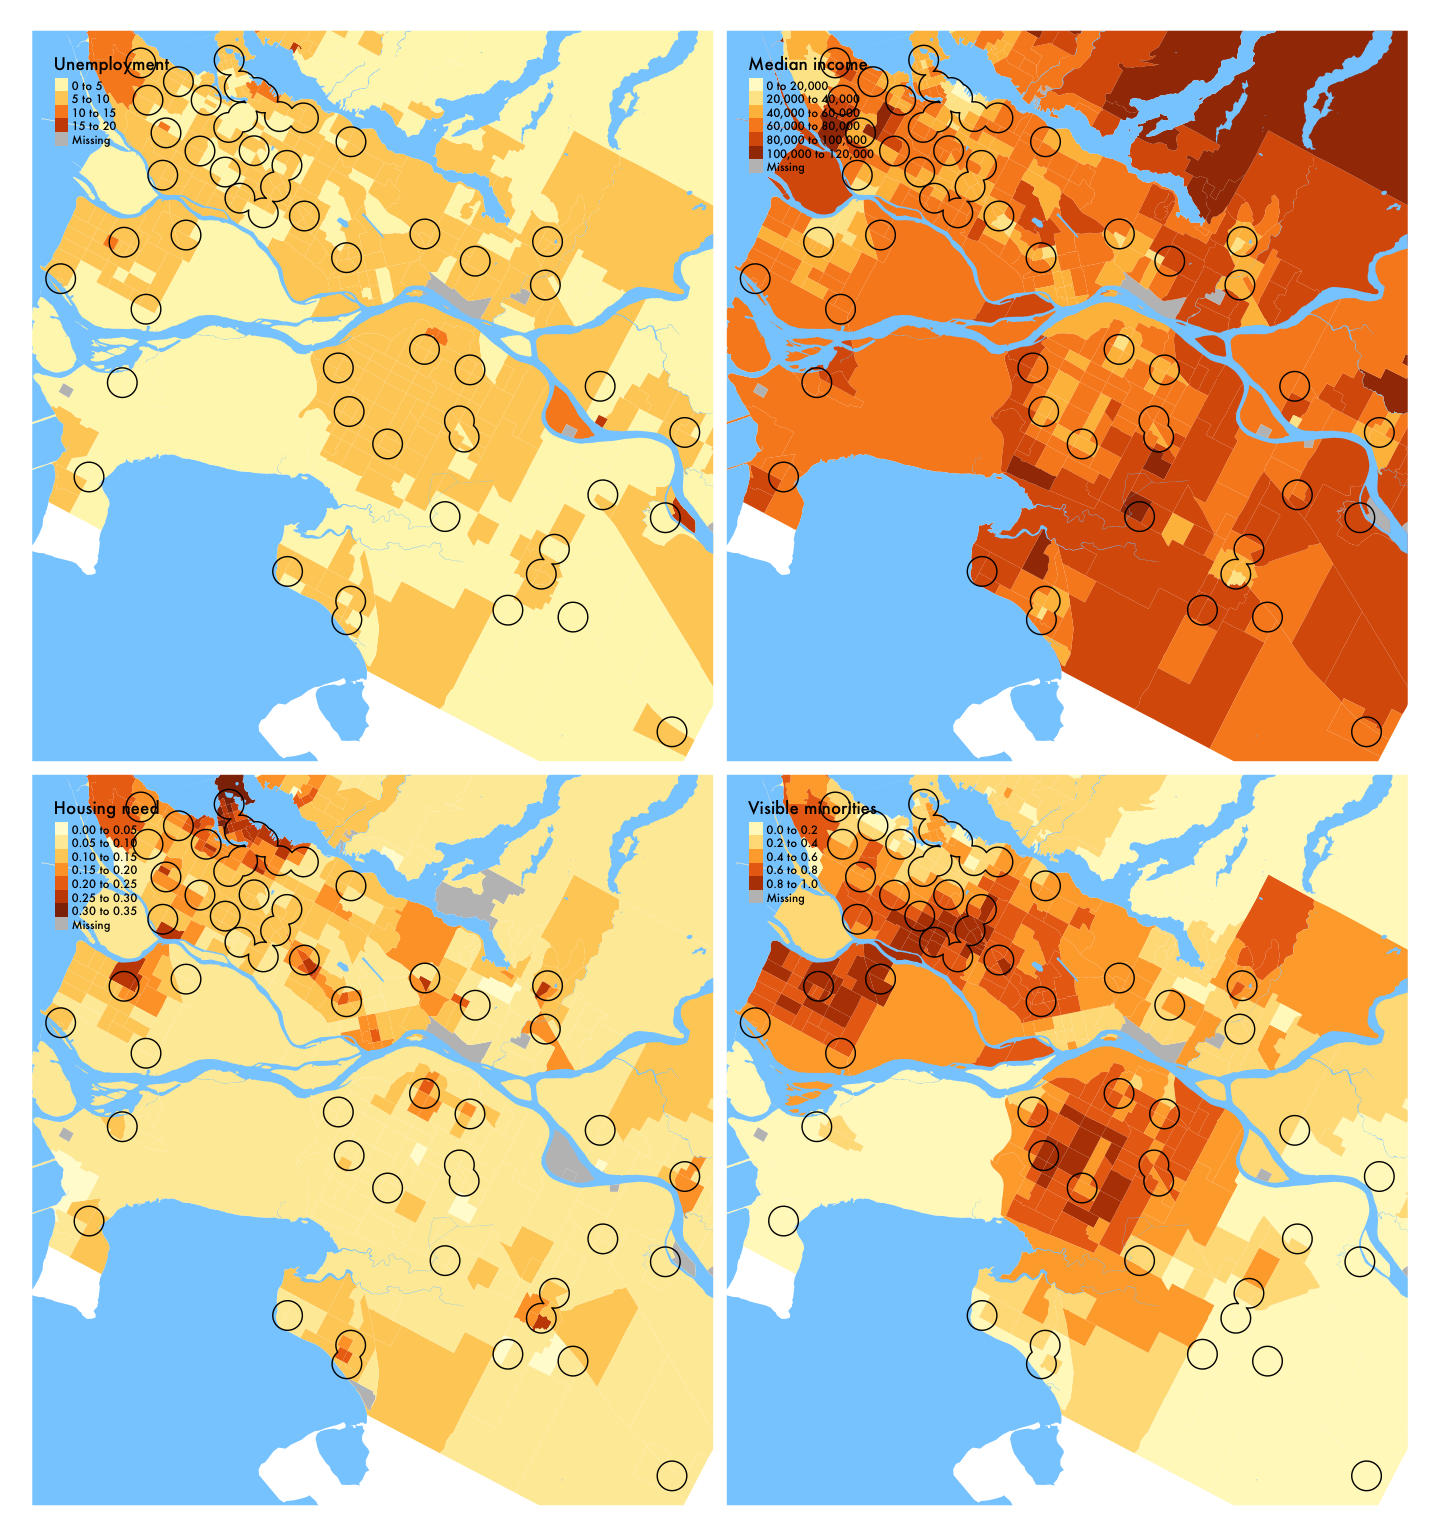 Demographic variables in Vancouver (library service area), 2016